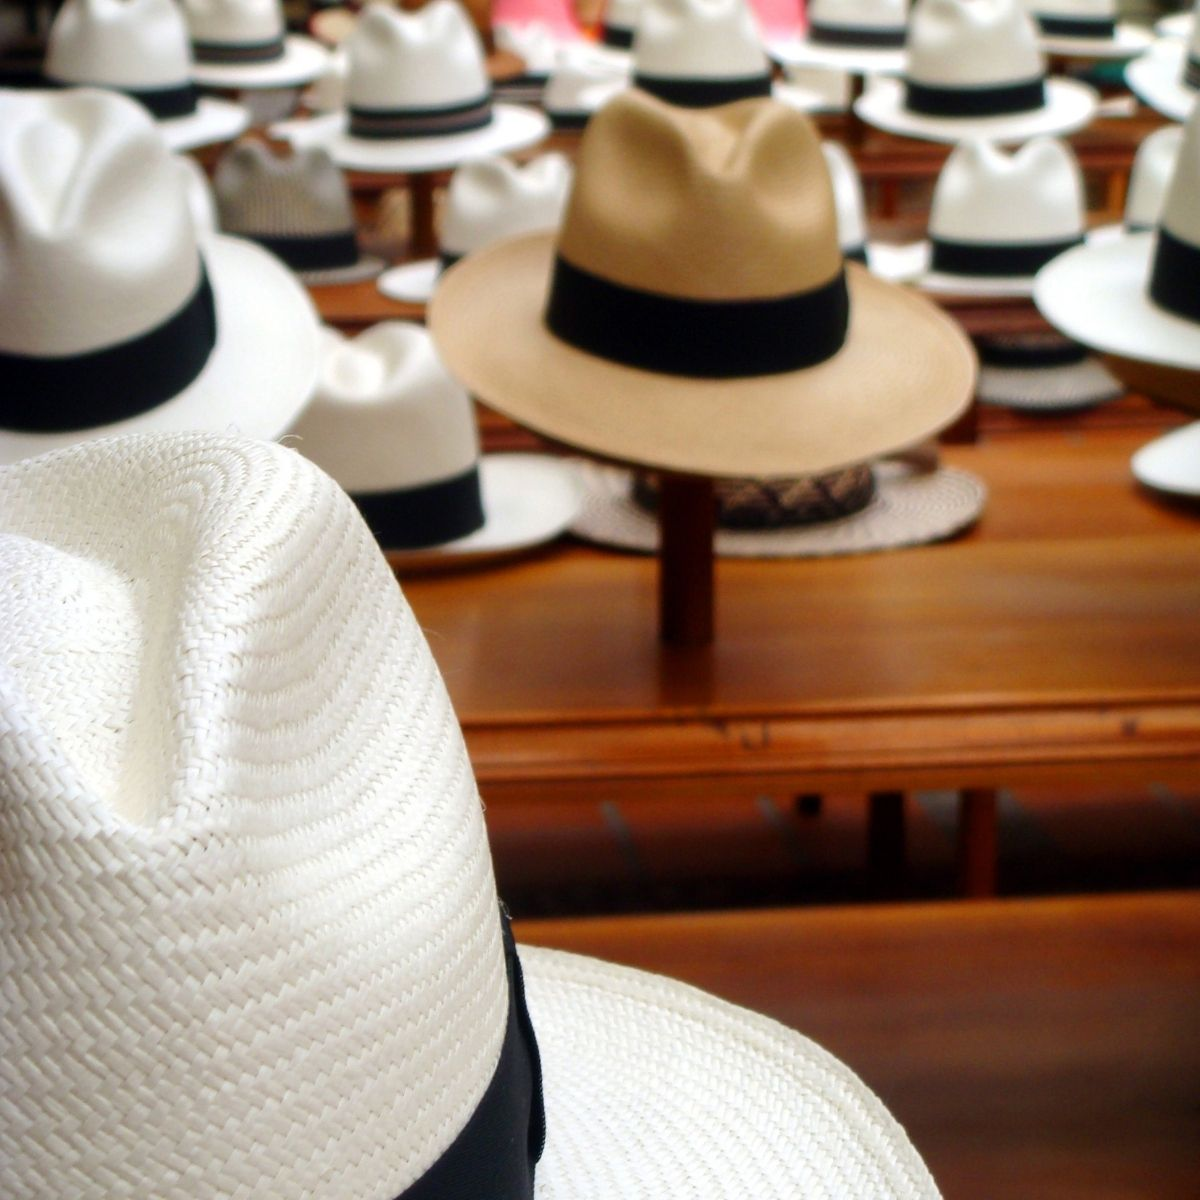 Panama Traditional Hat Shopping